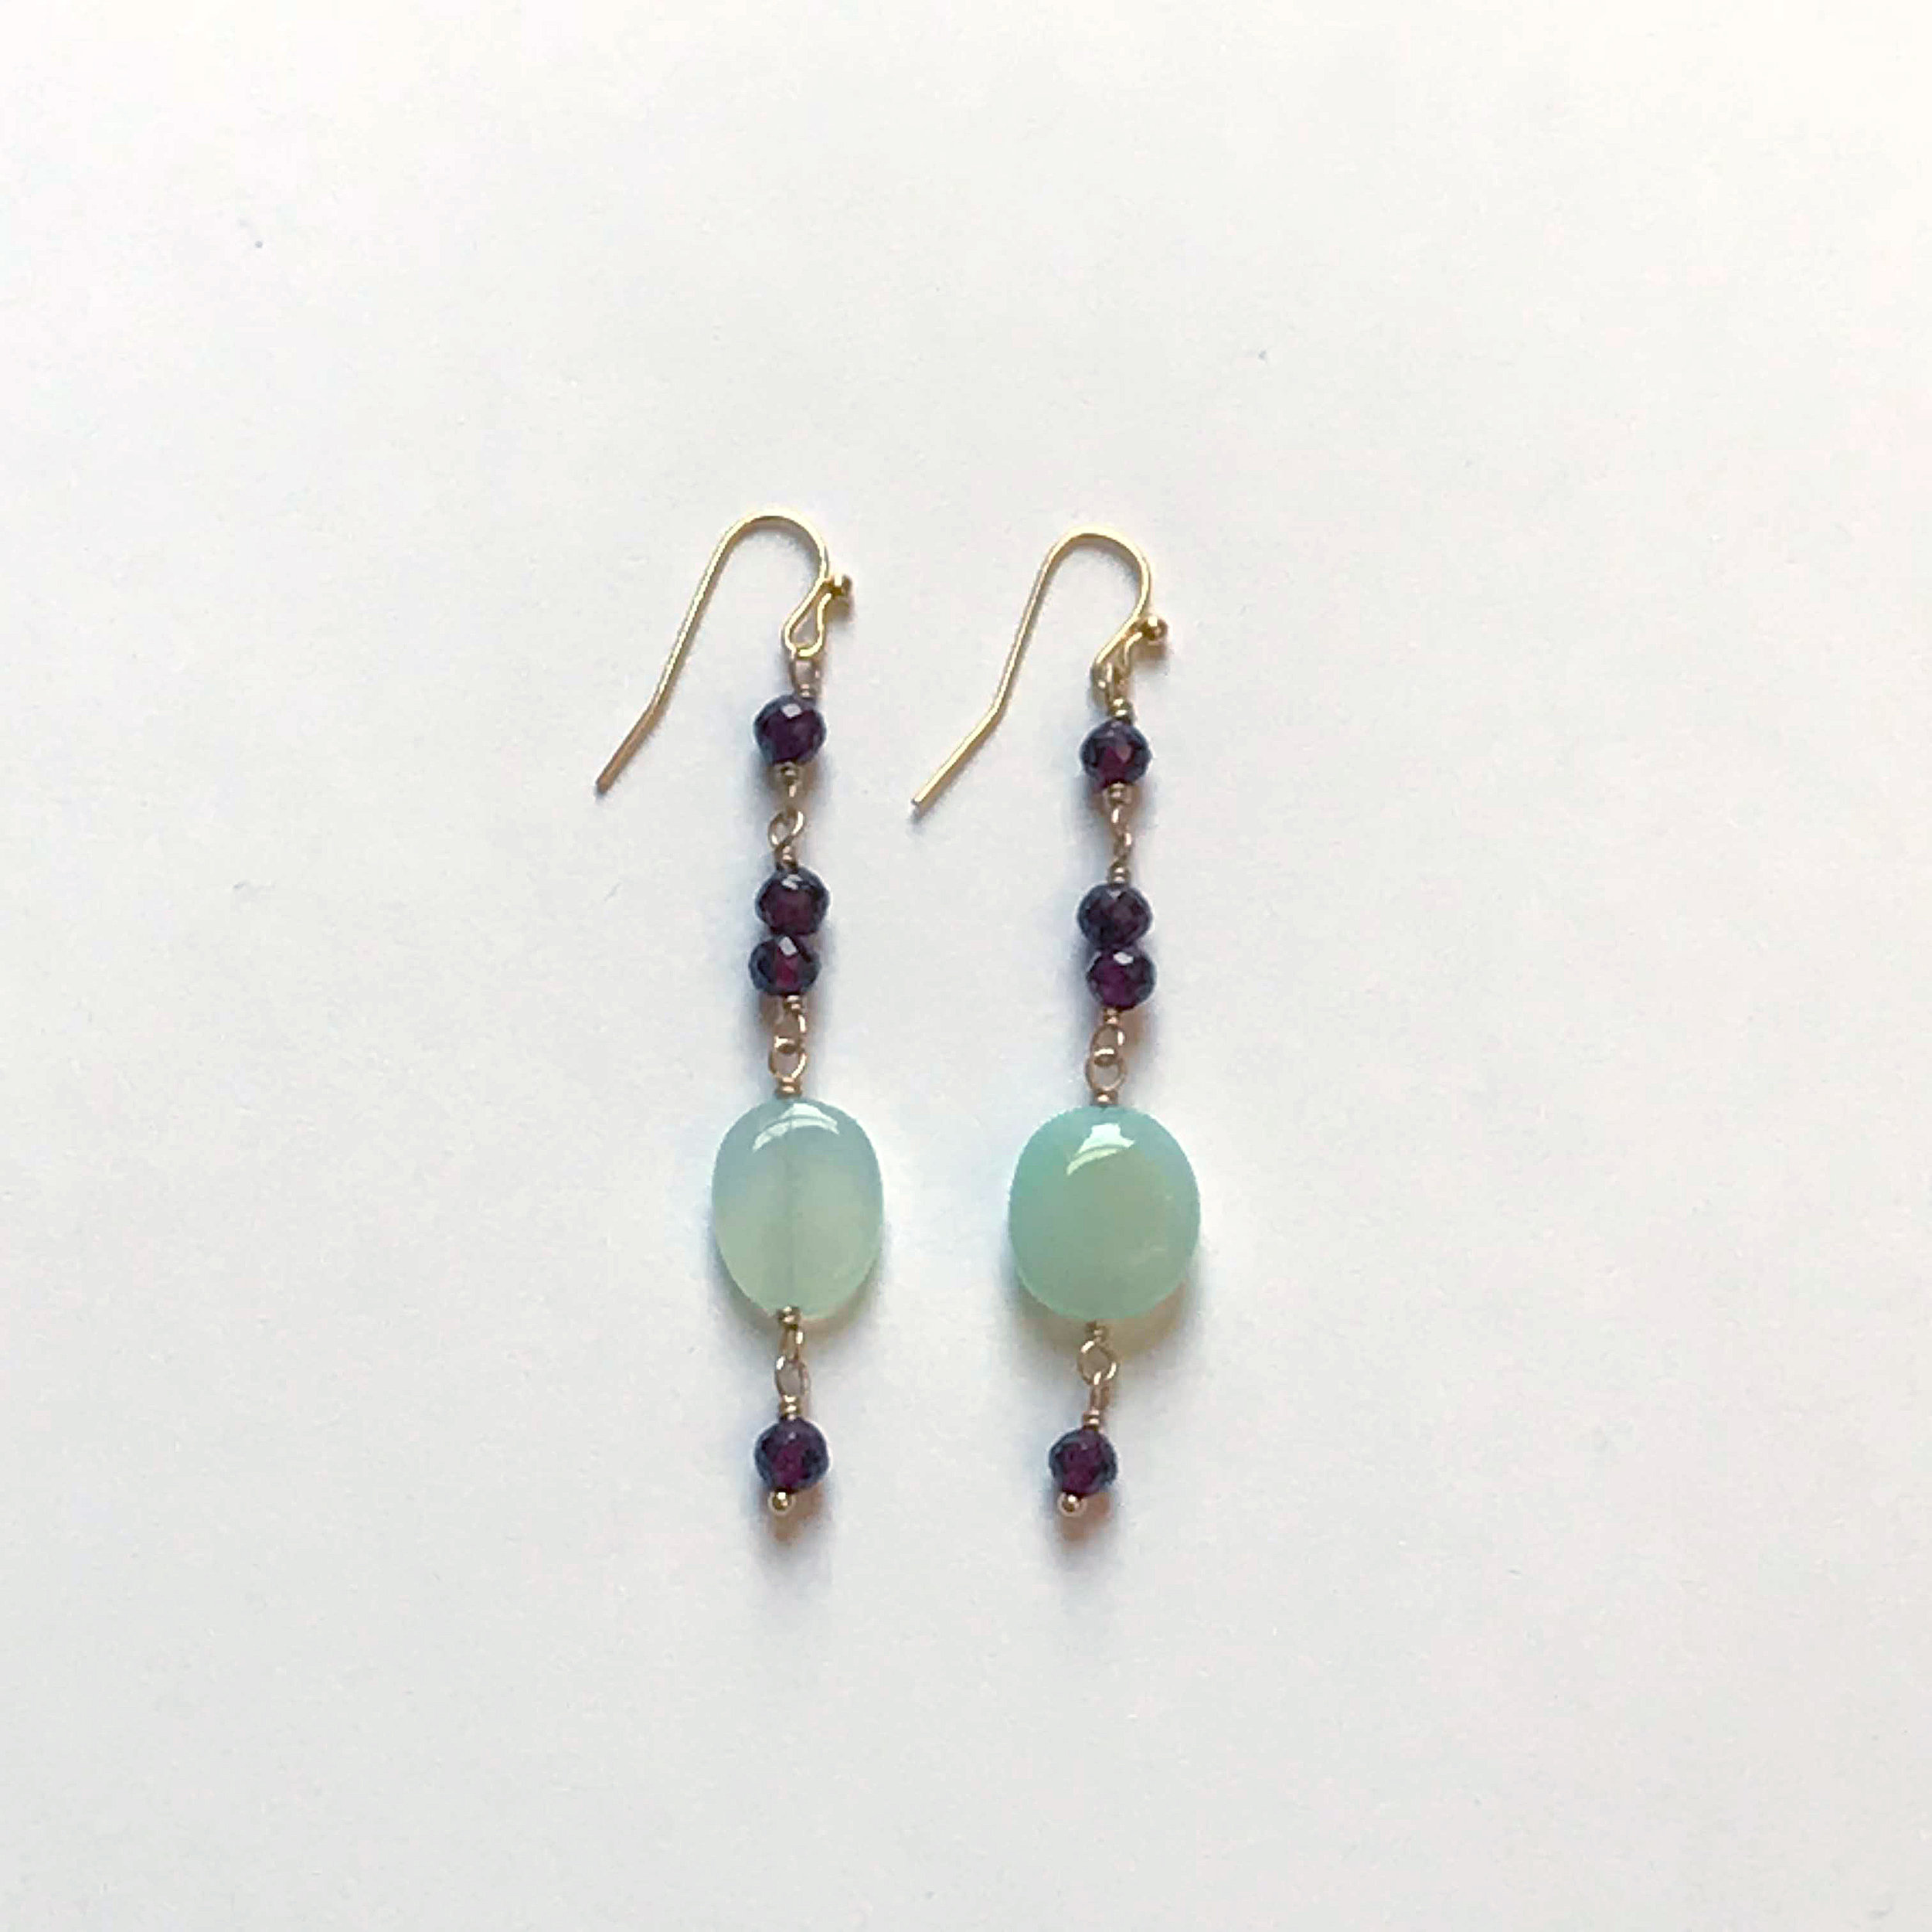 $325 Gold Filled Chalcedony Garnet Earrings